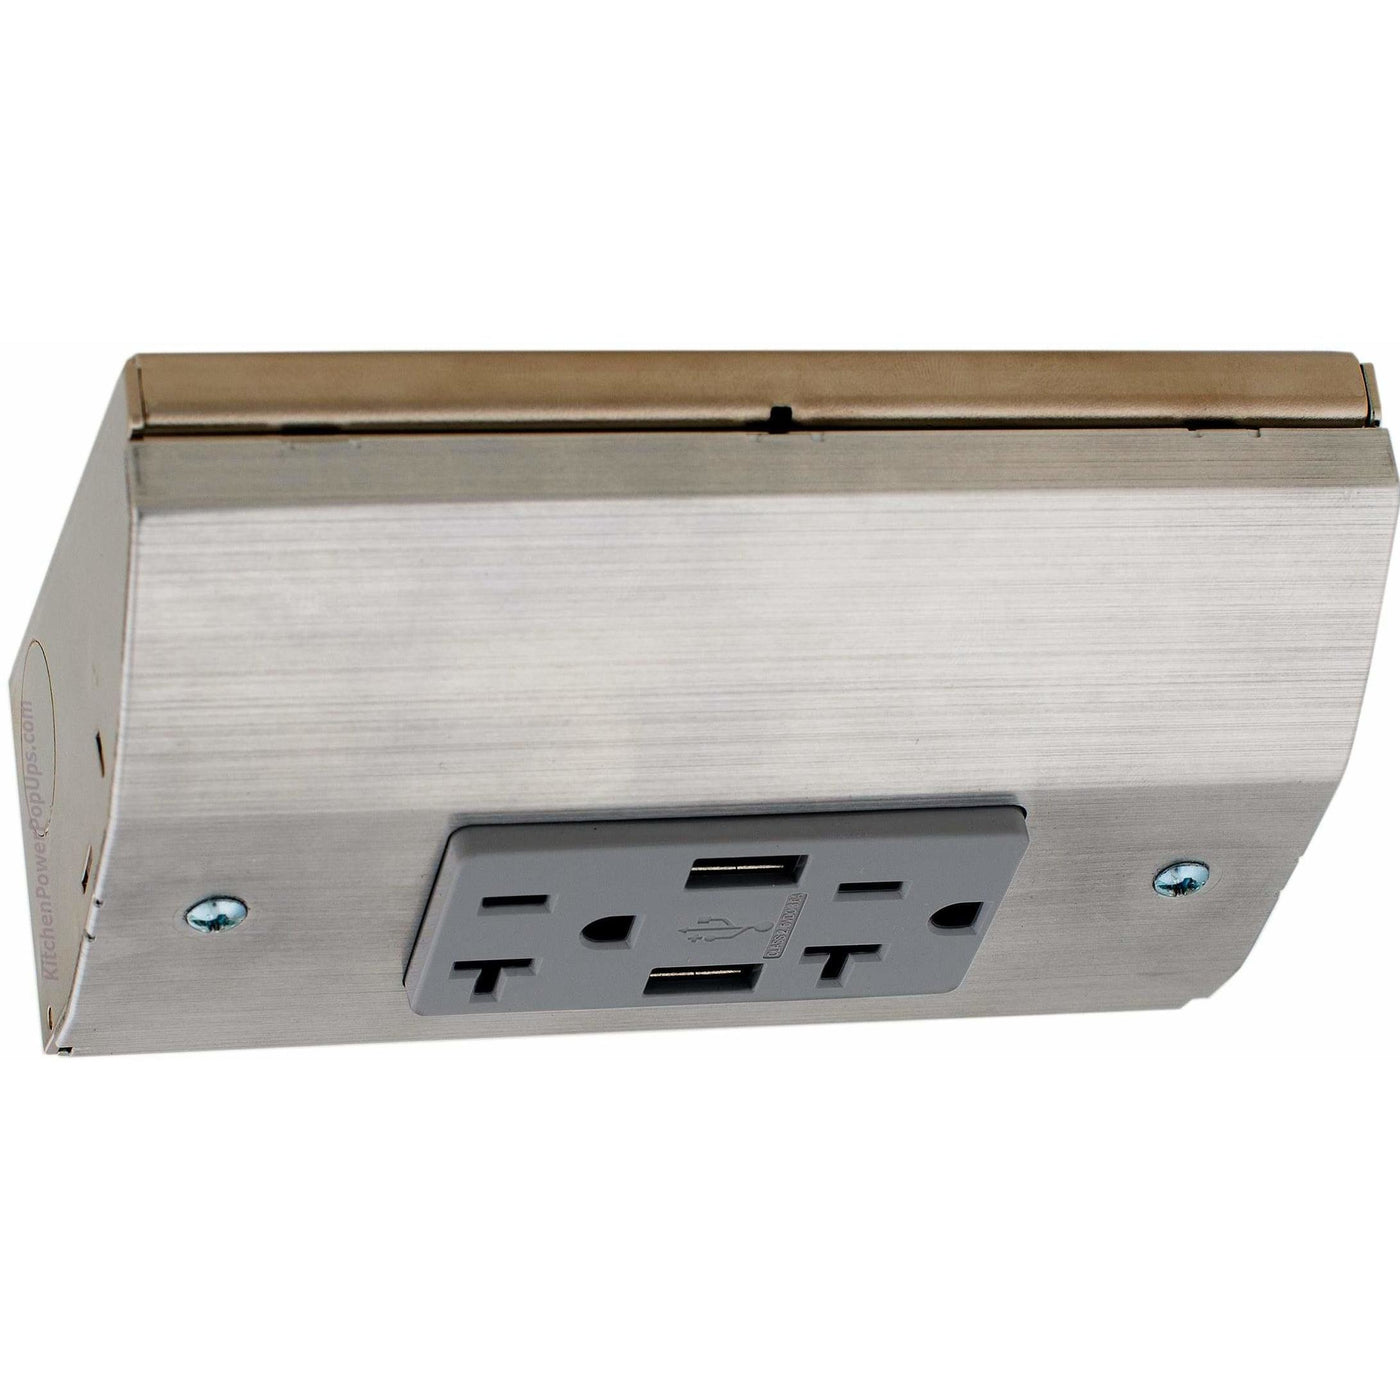 Gentil Hubbell RU200SS20AUSB Under Cabinet Power 20A USB Box Stainless ...